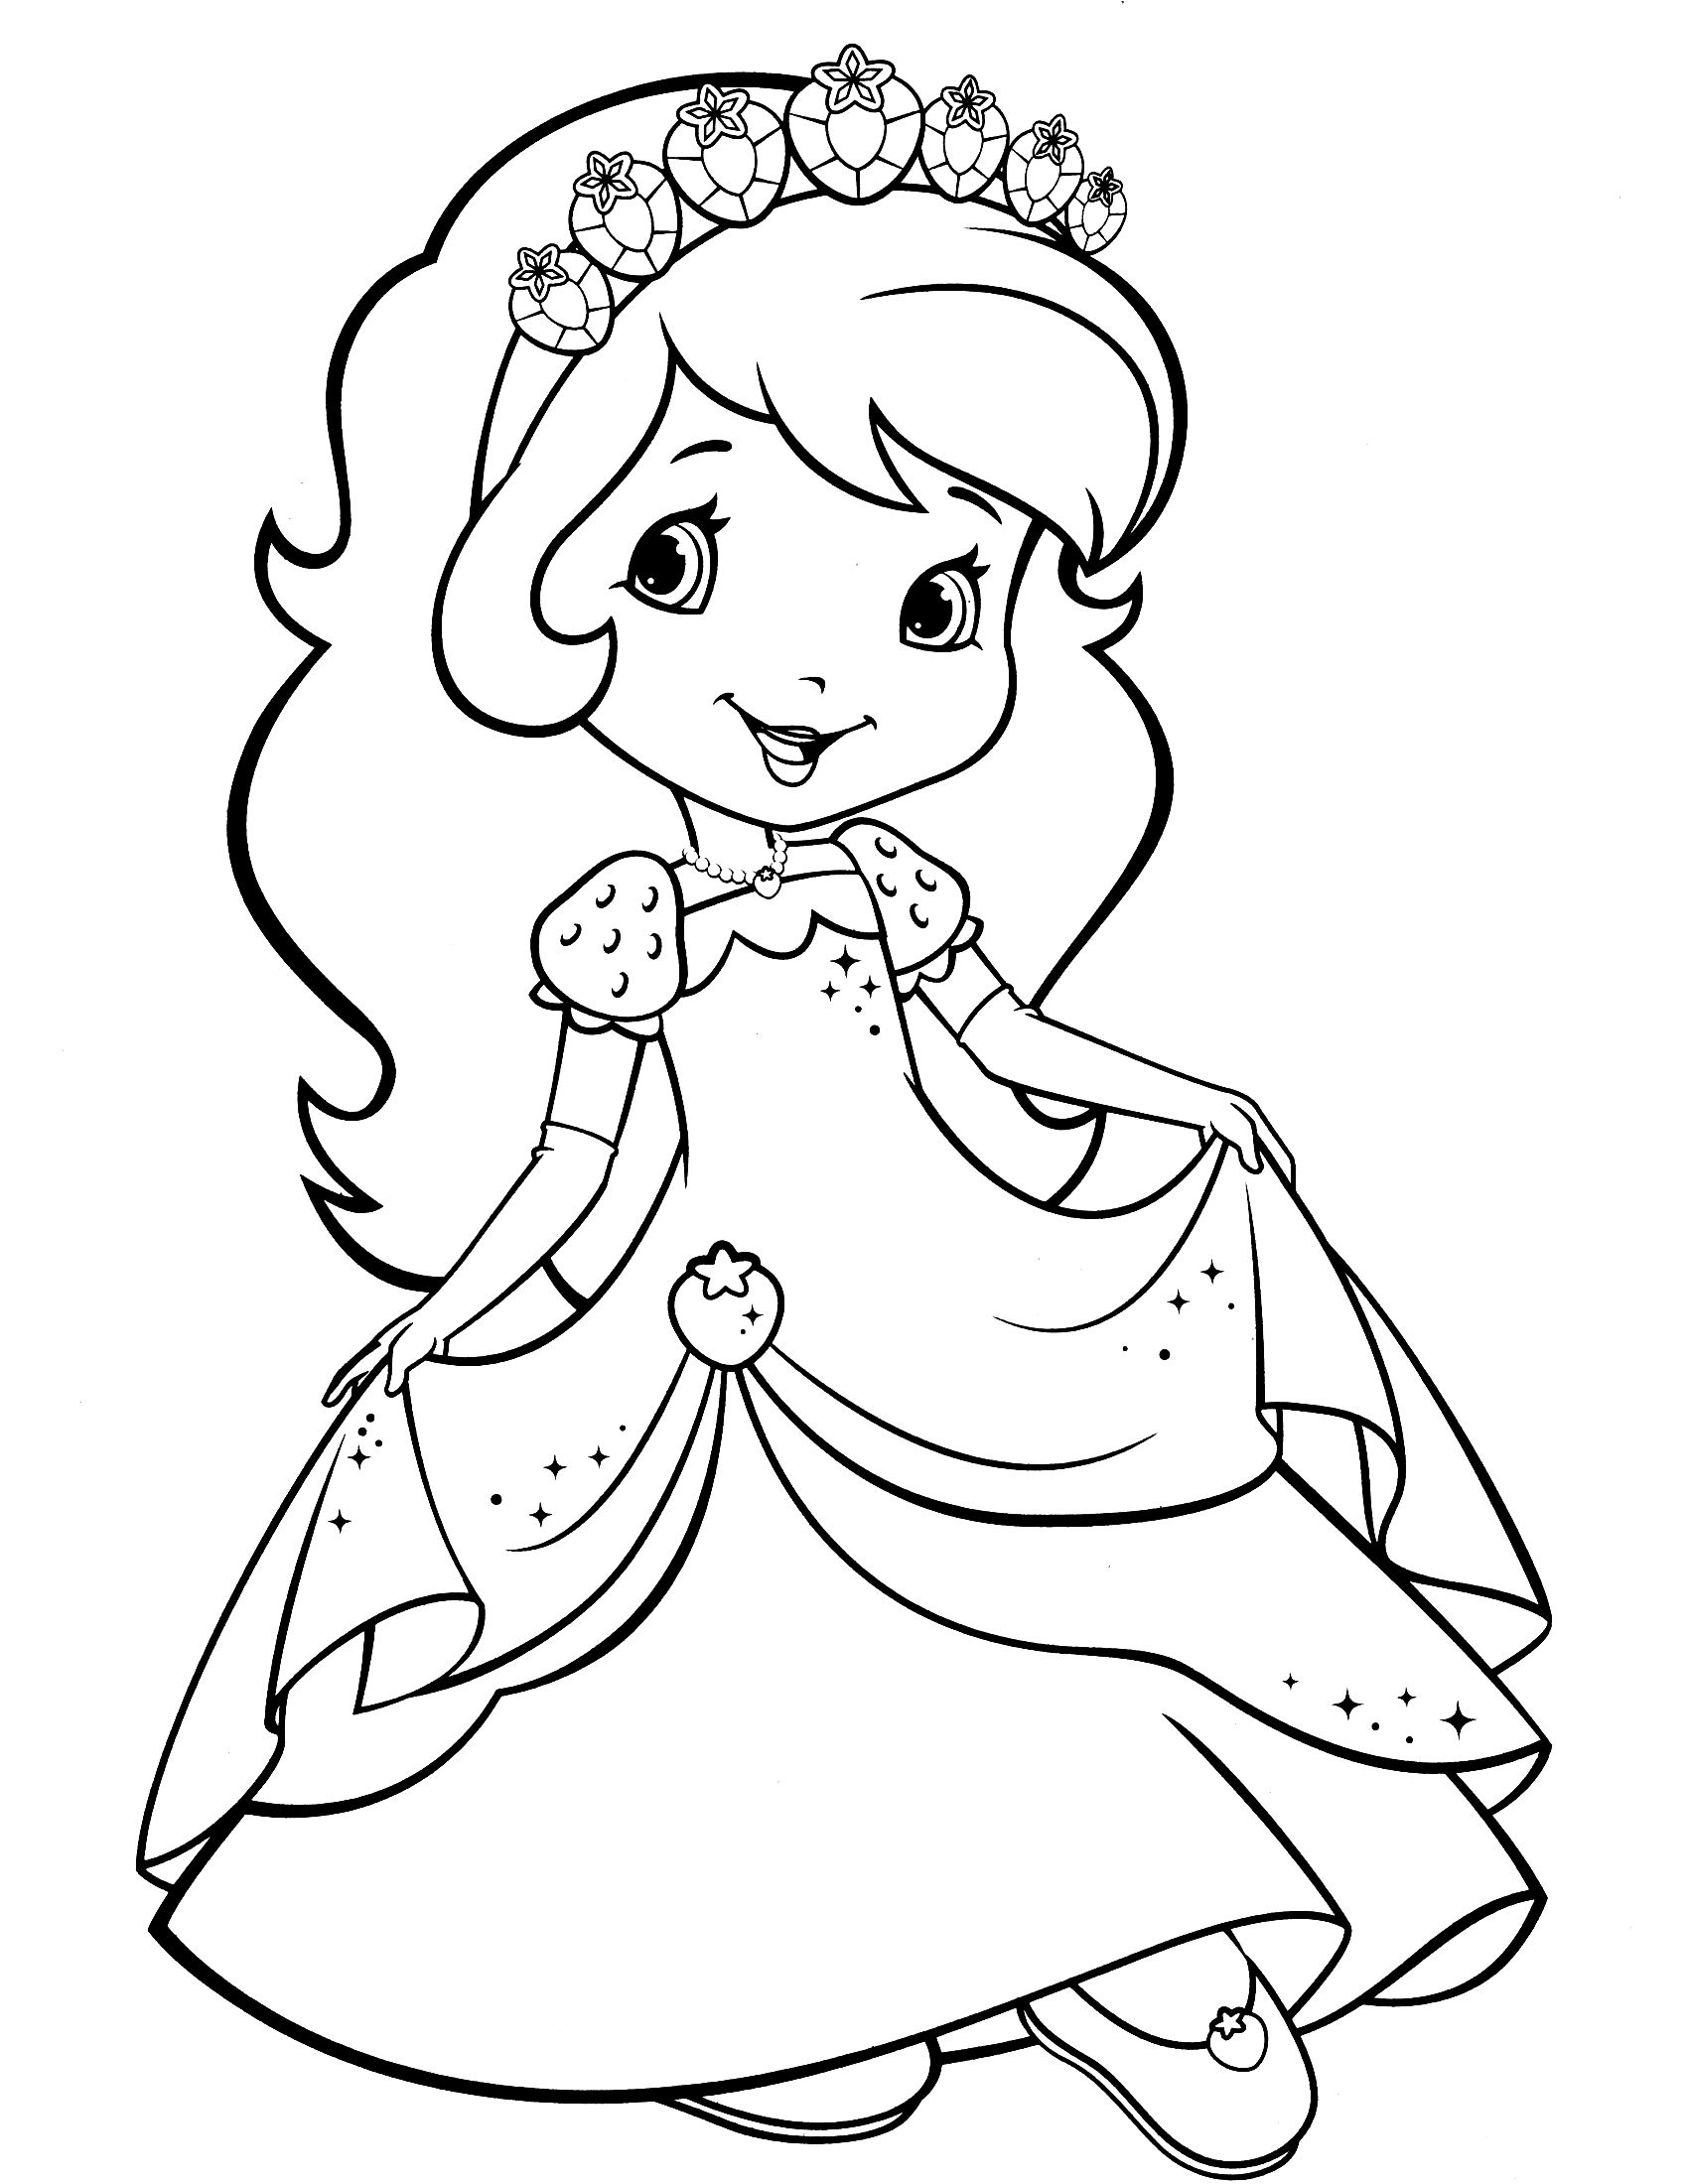 strawberry shortcake coloring pages free - photo#23